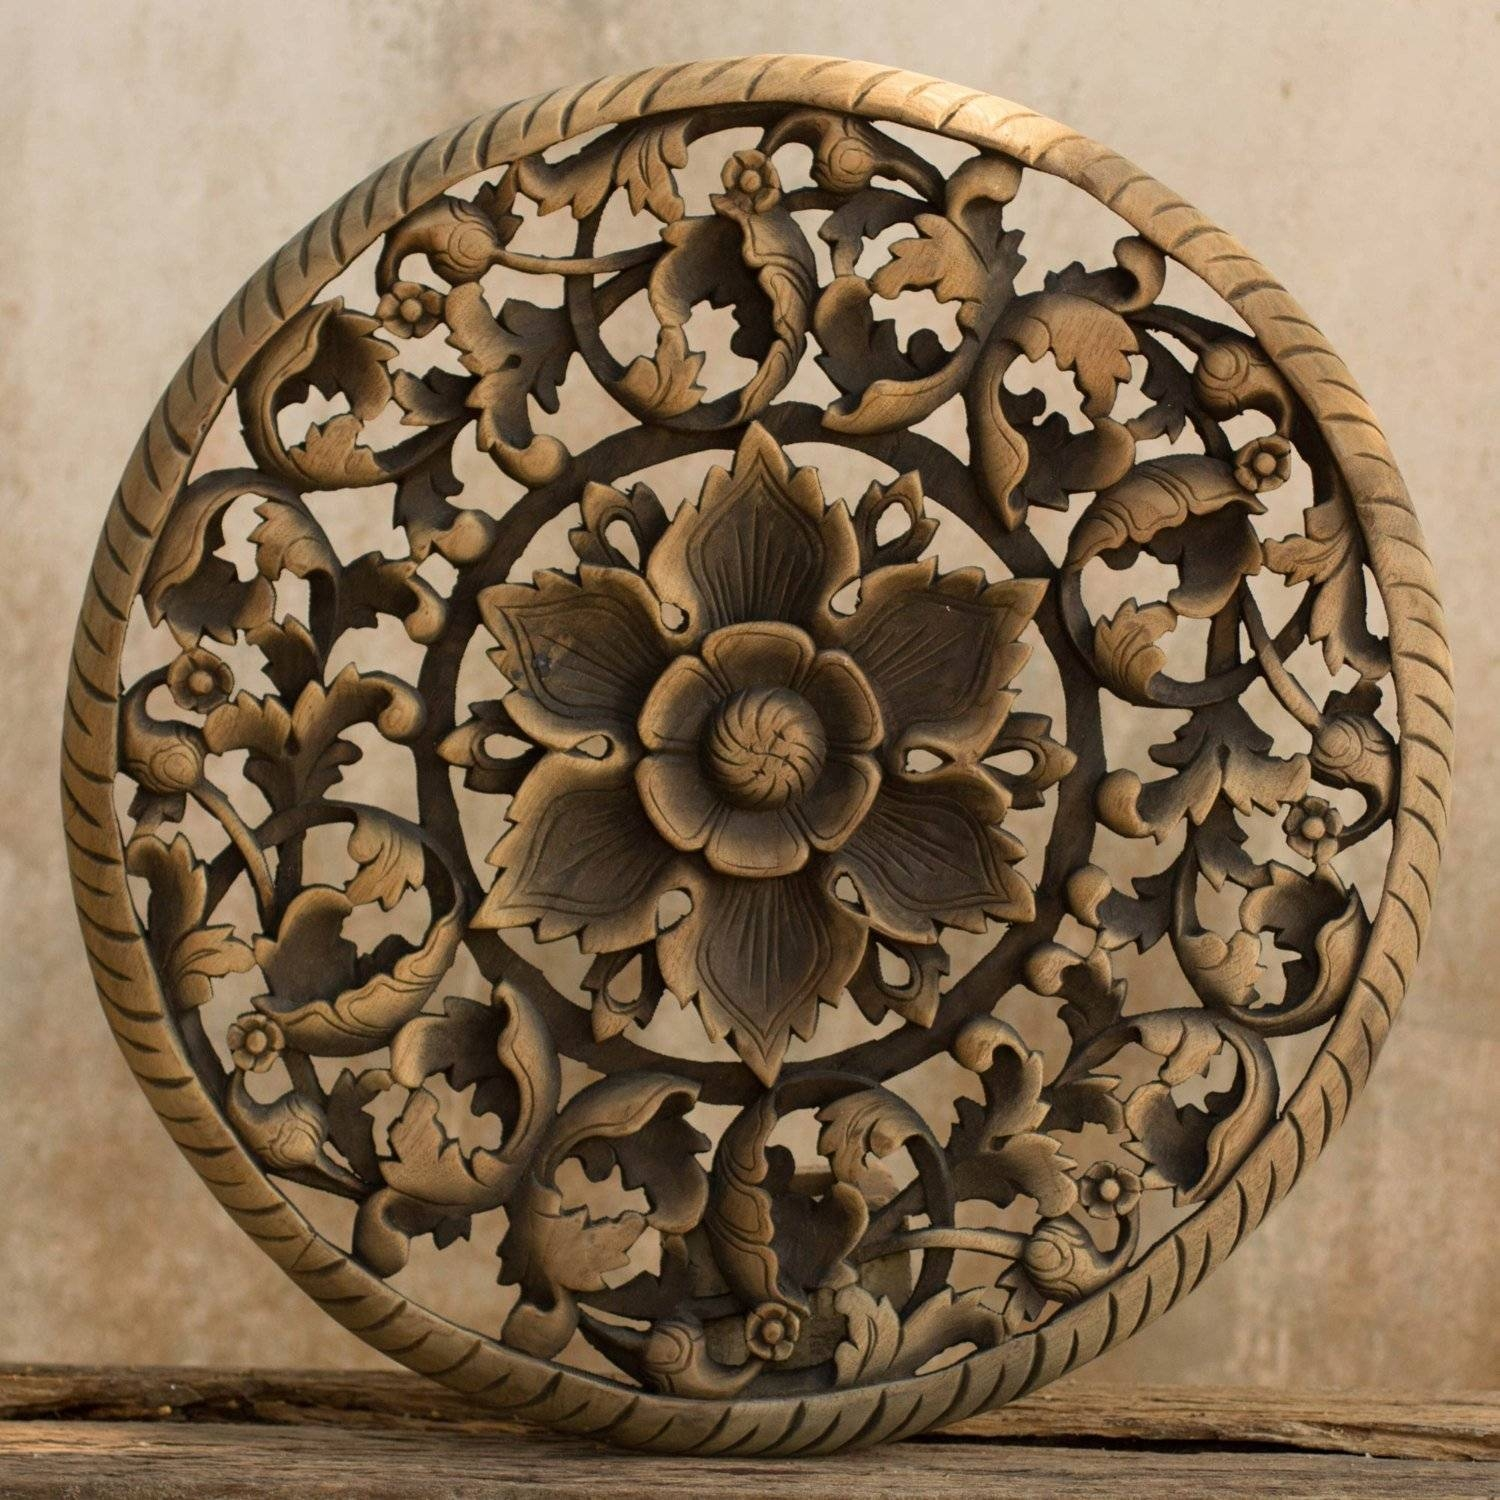 Tree Dimensional Floral Wooden Wall Hanging – Siam Sawadee With Regard To Most Recently Released Asian Wall Art Panels (View 15 of 20)